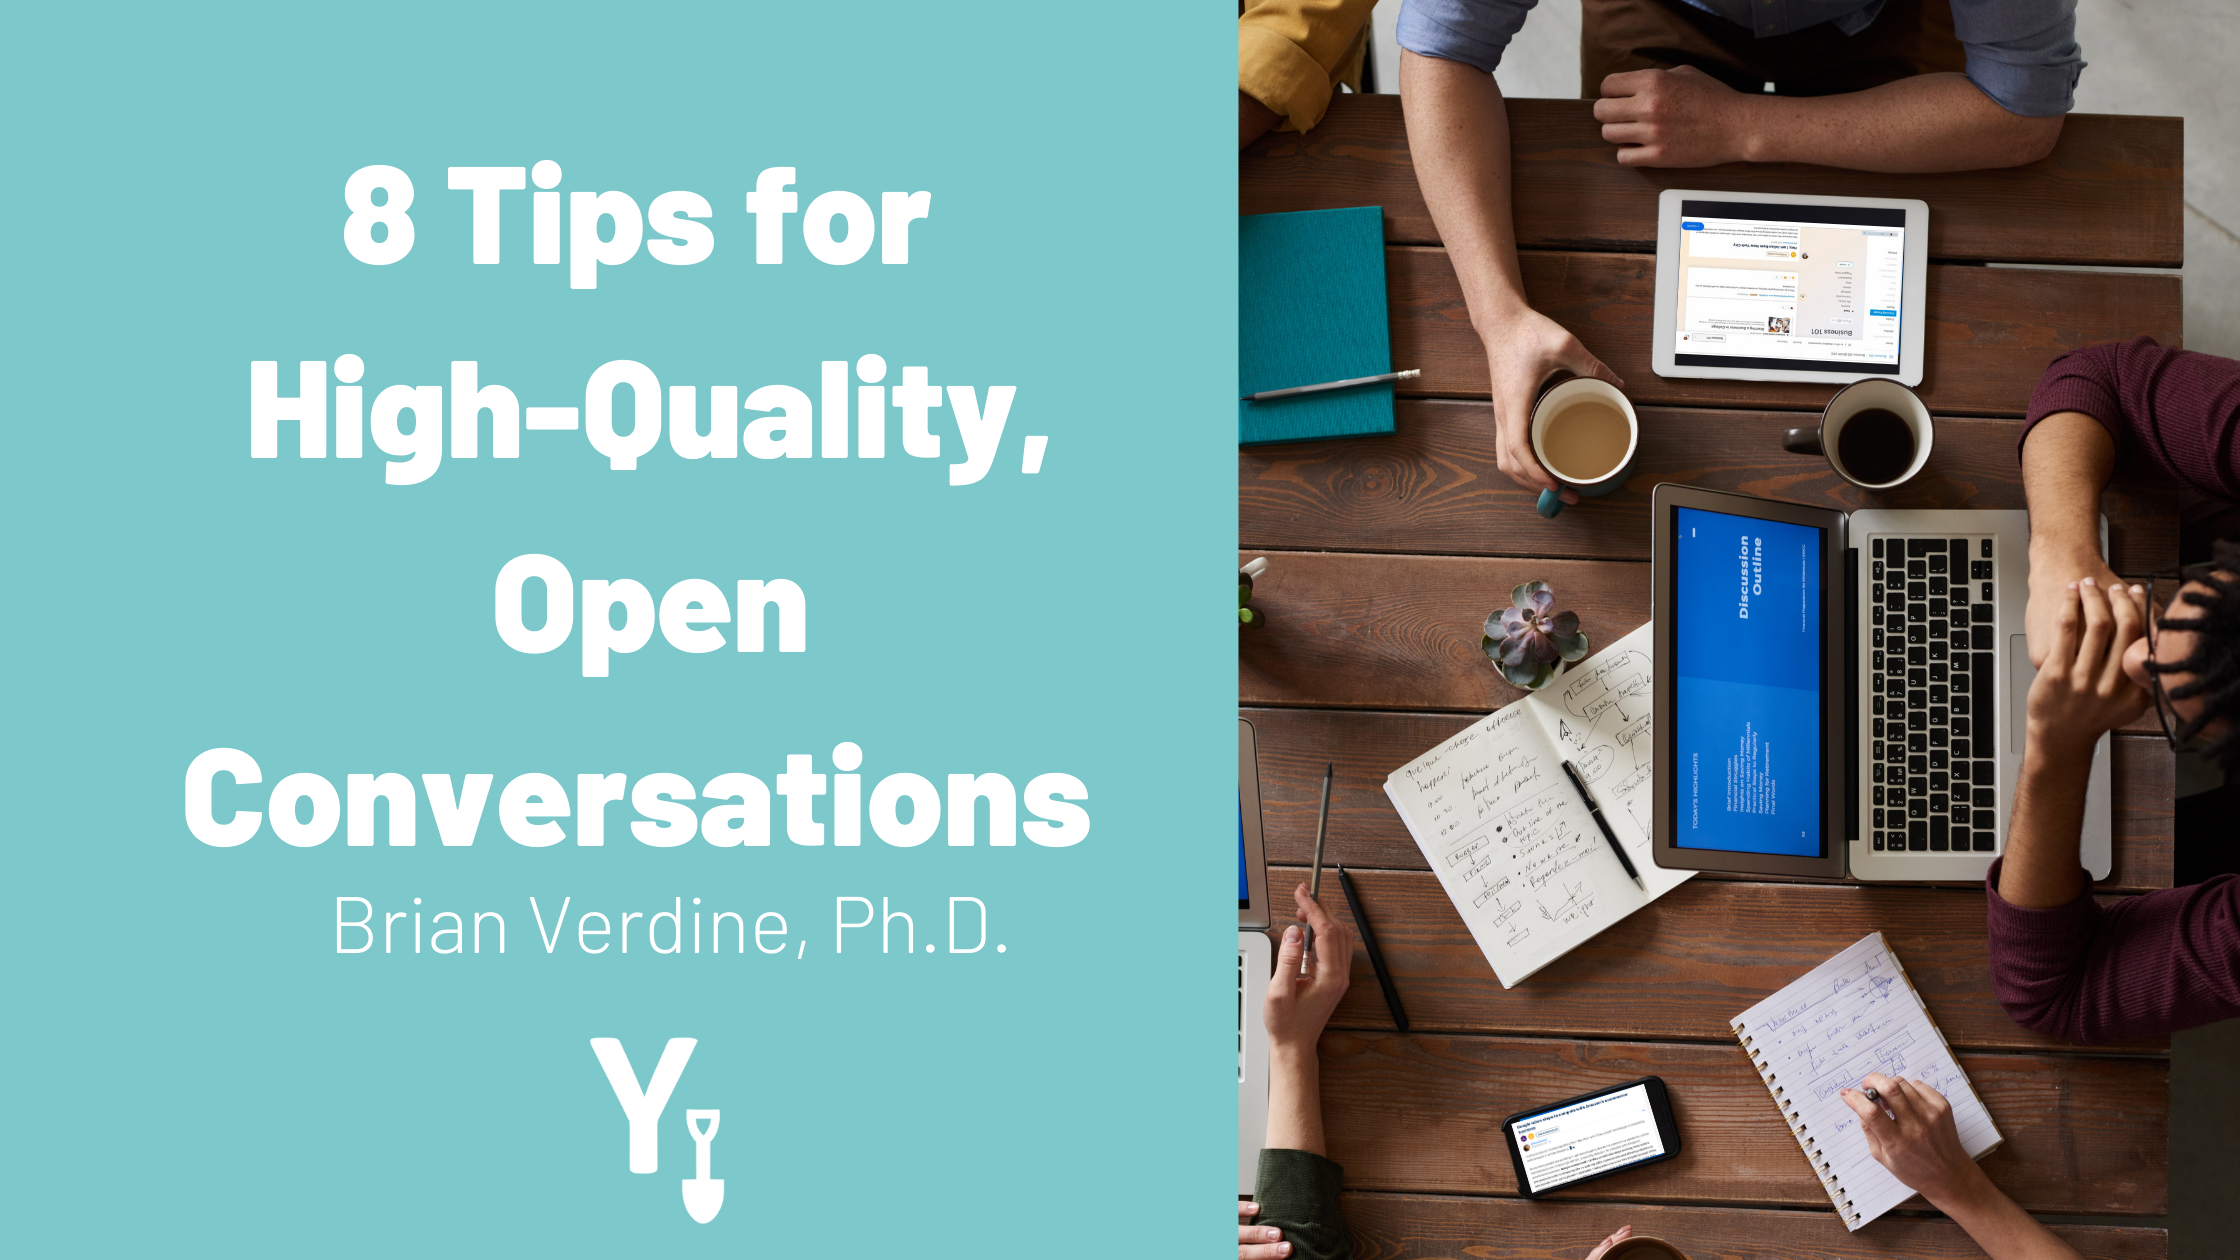 8 Tips for High-quality, open conversations Brian Verdine PHD